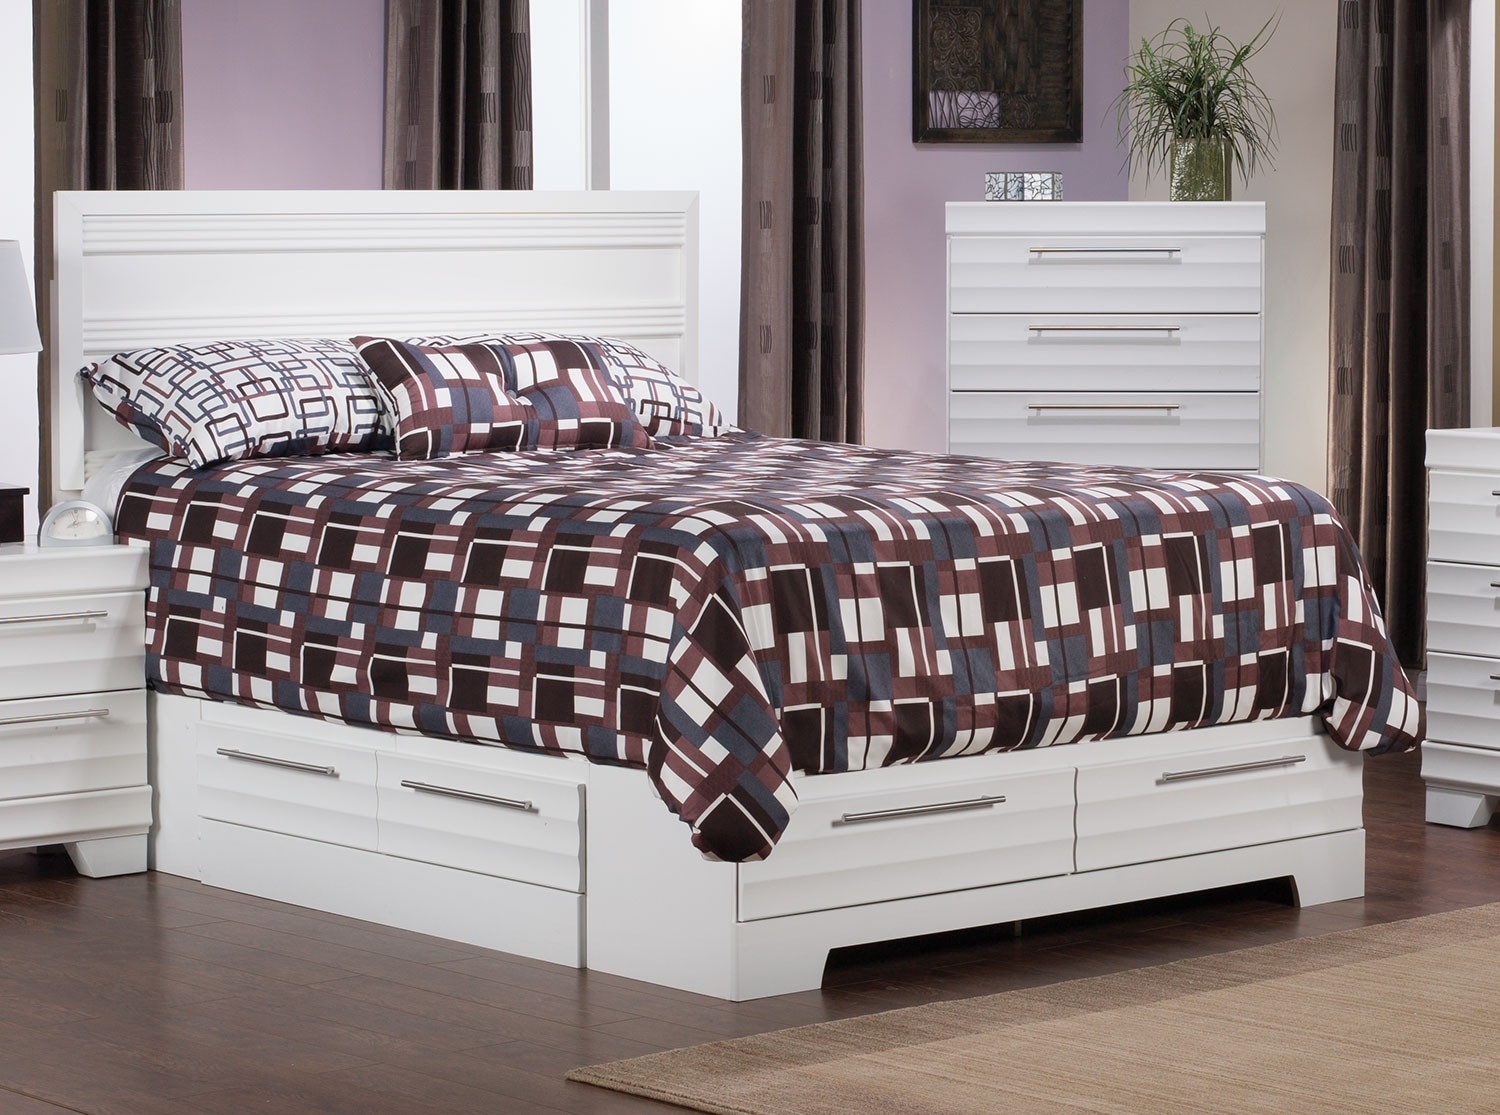 Bedroom Furniture - Olivia Queen Storage Bed – White